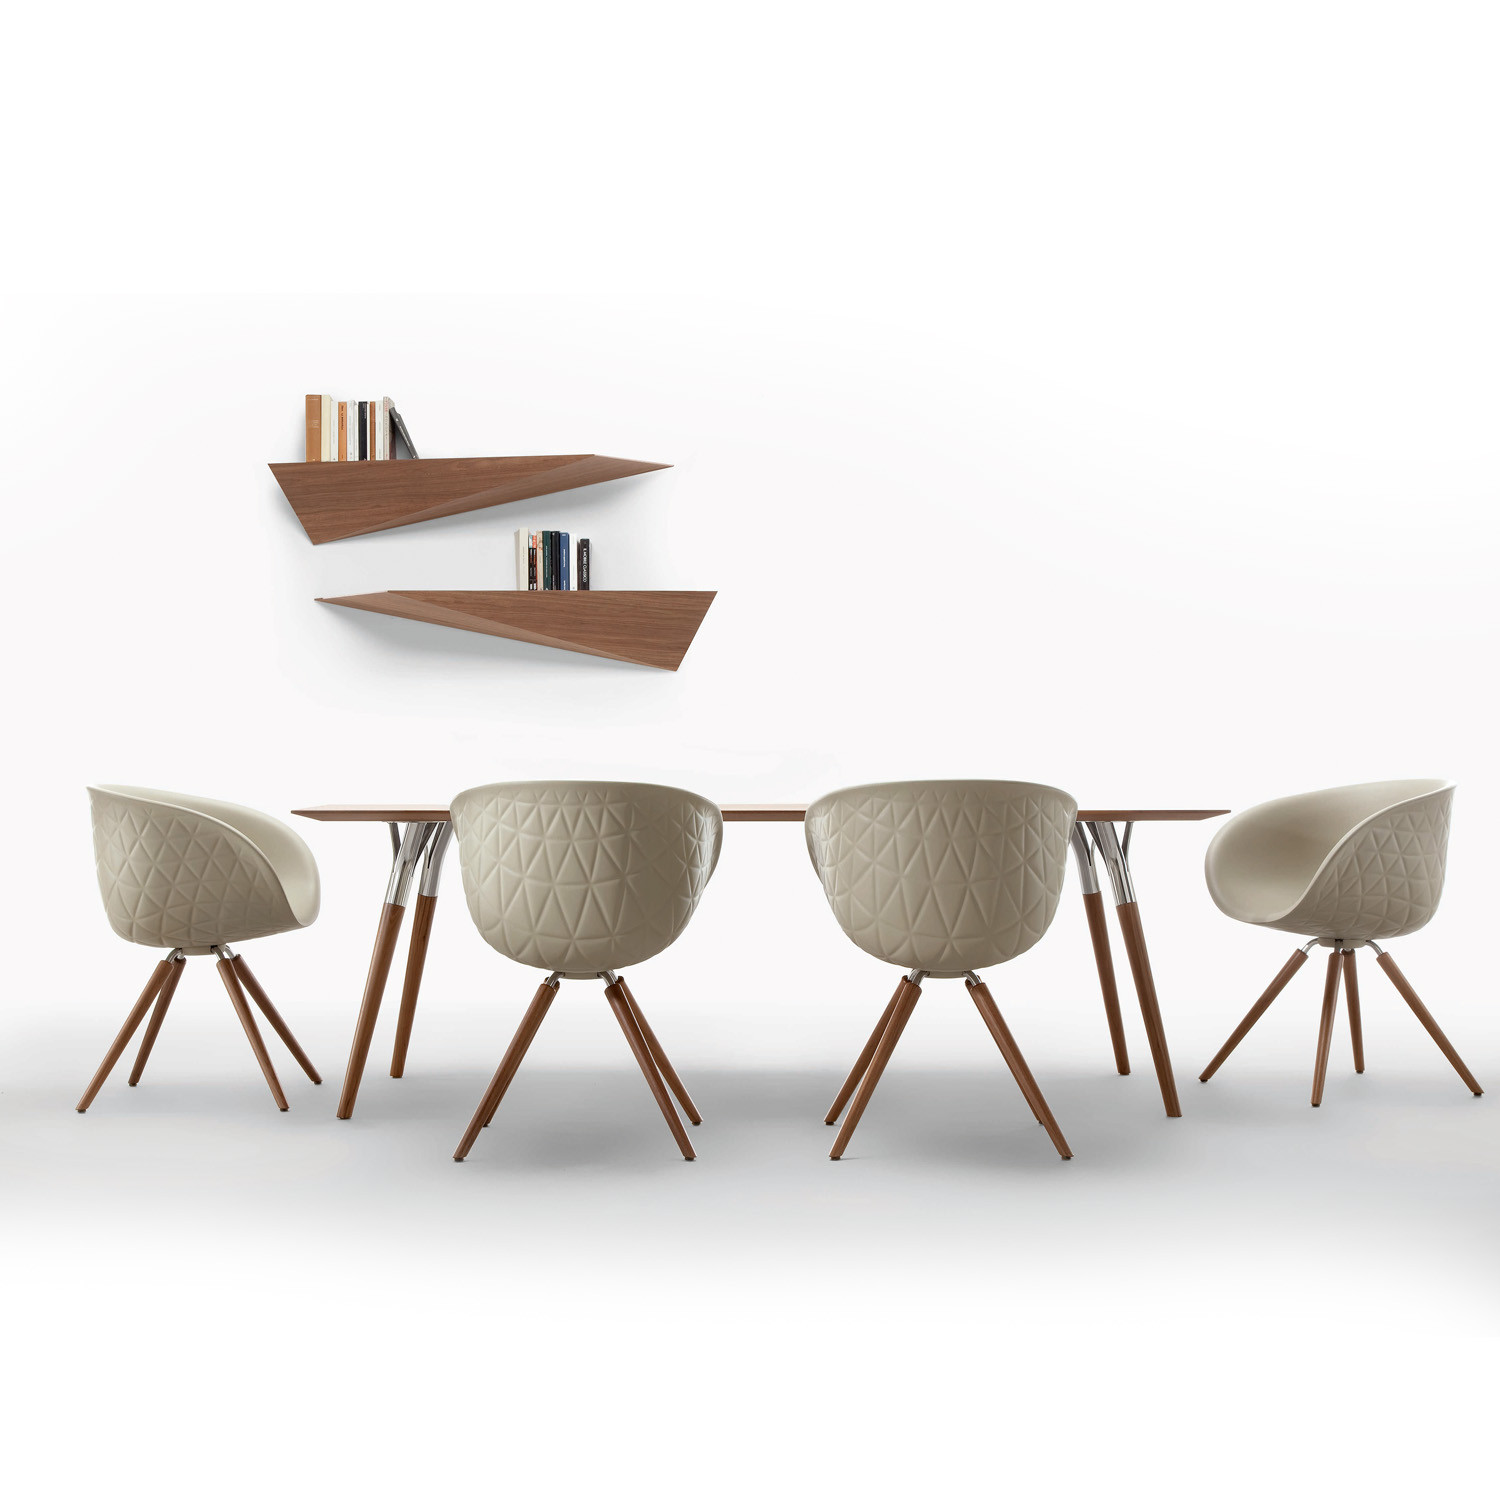 Structure Wood Chairs by Tonon